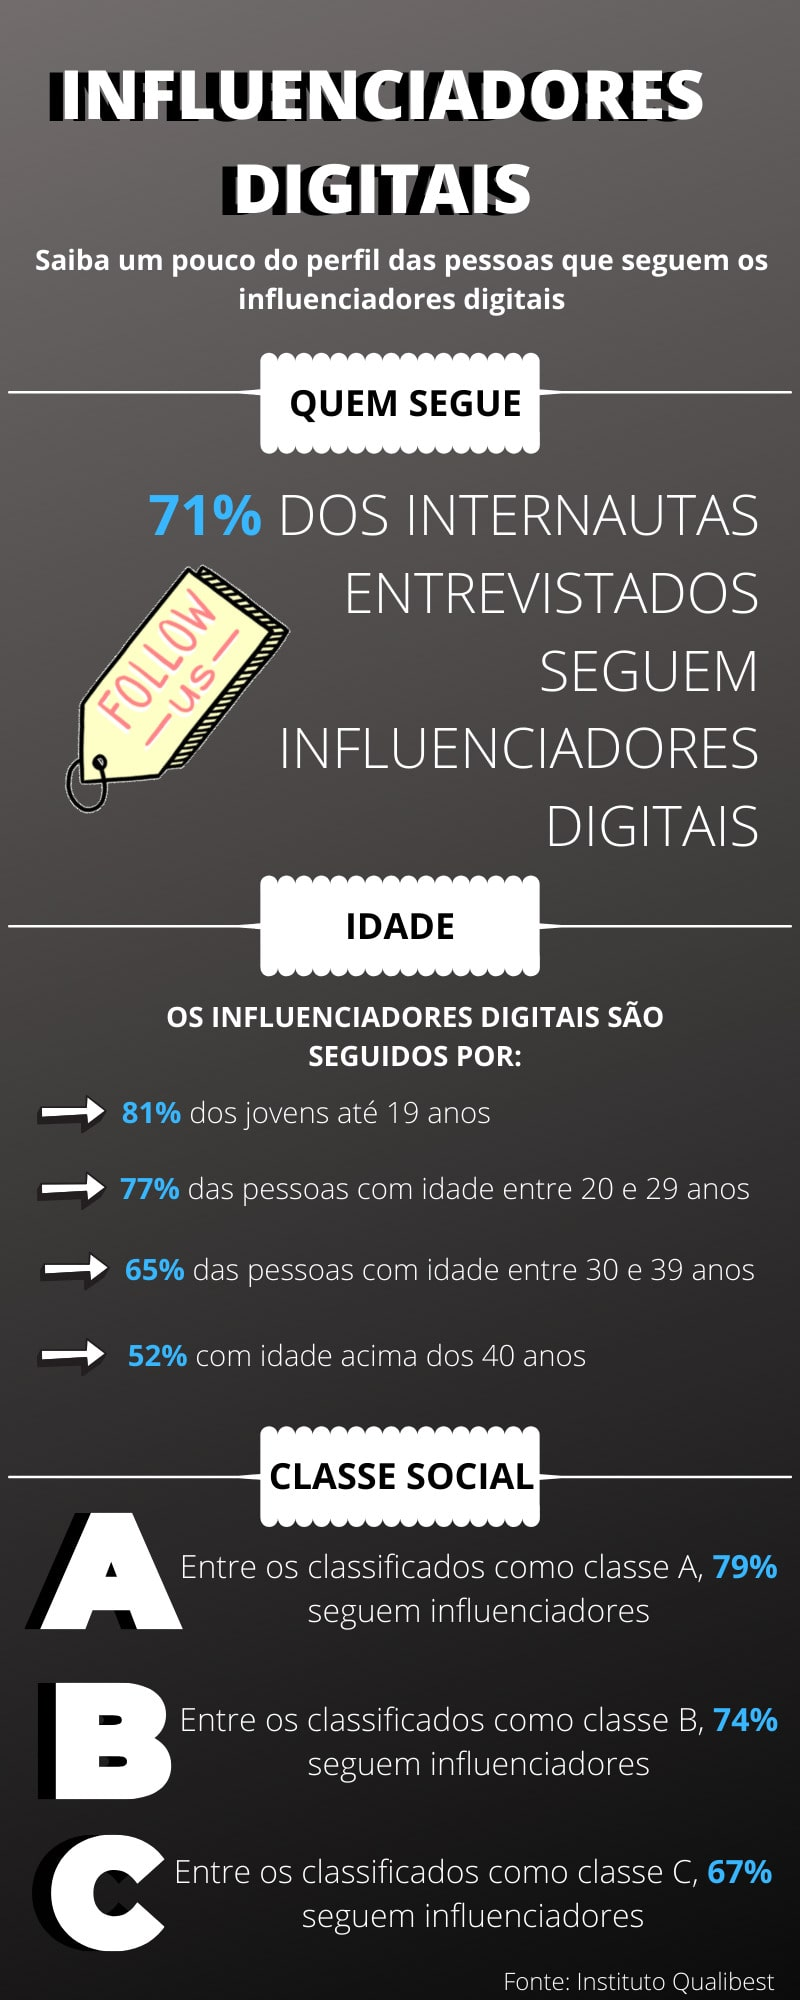 Rede social ideal